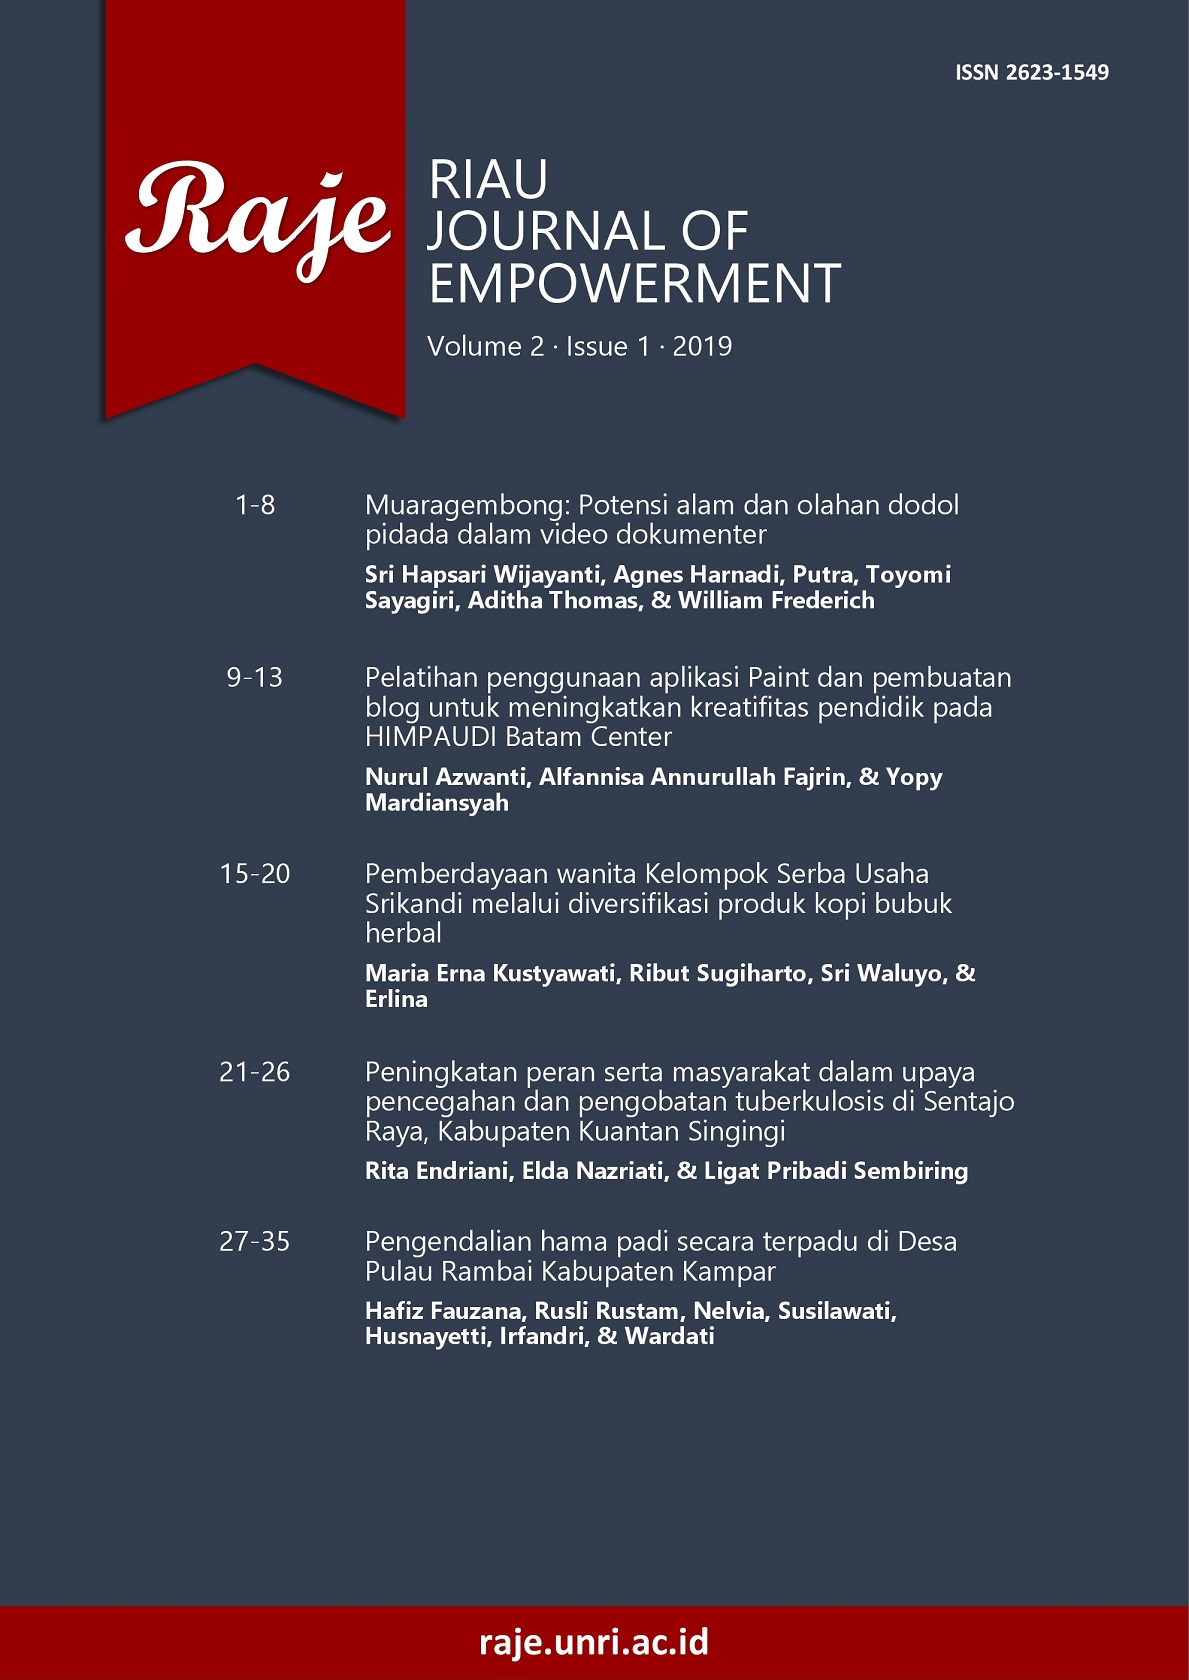 Riau Journal of Empowerment